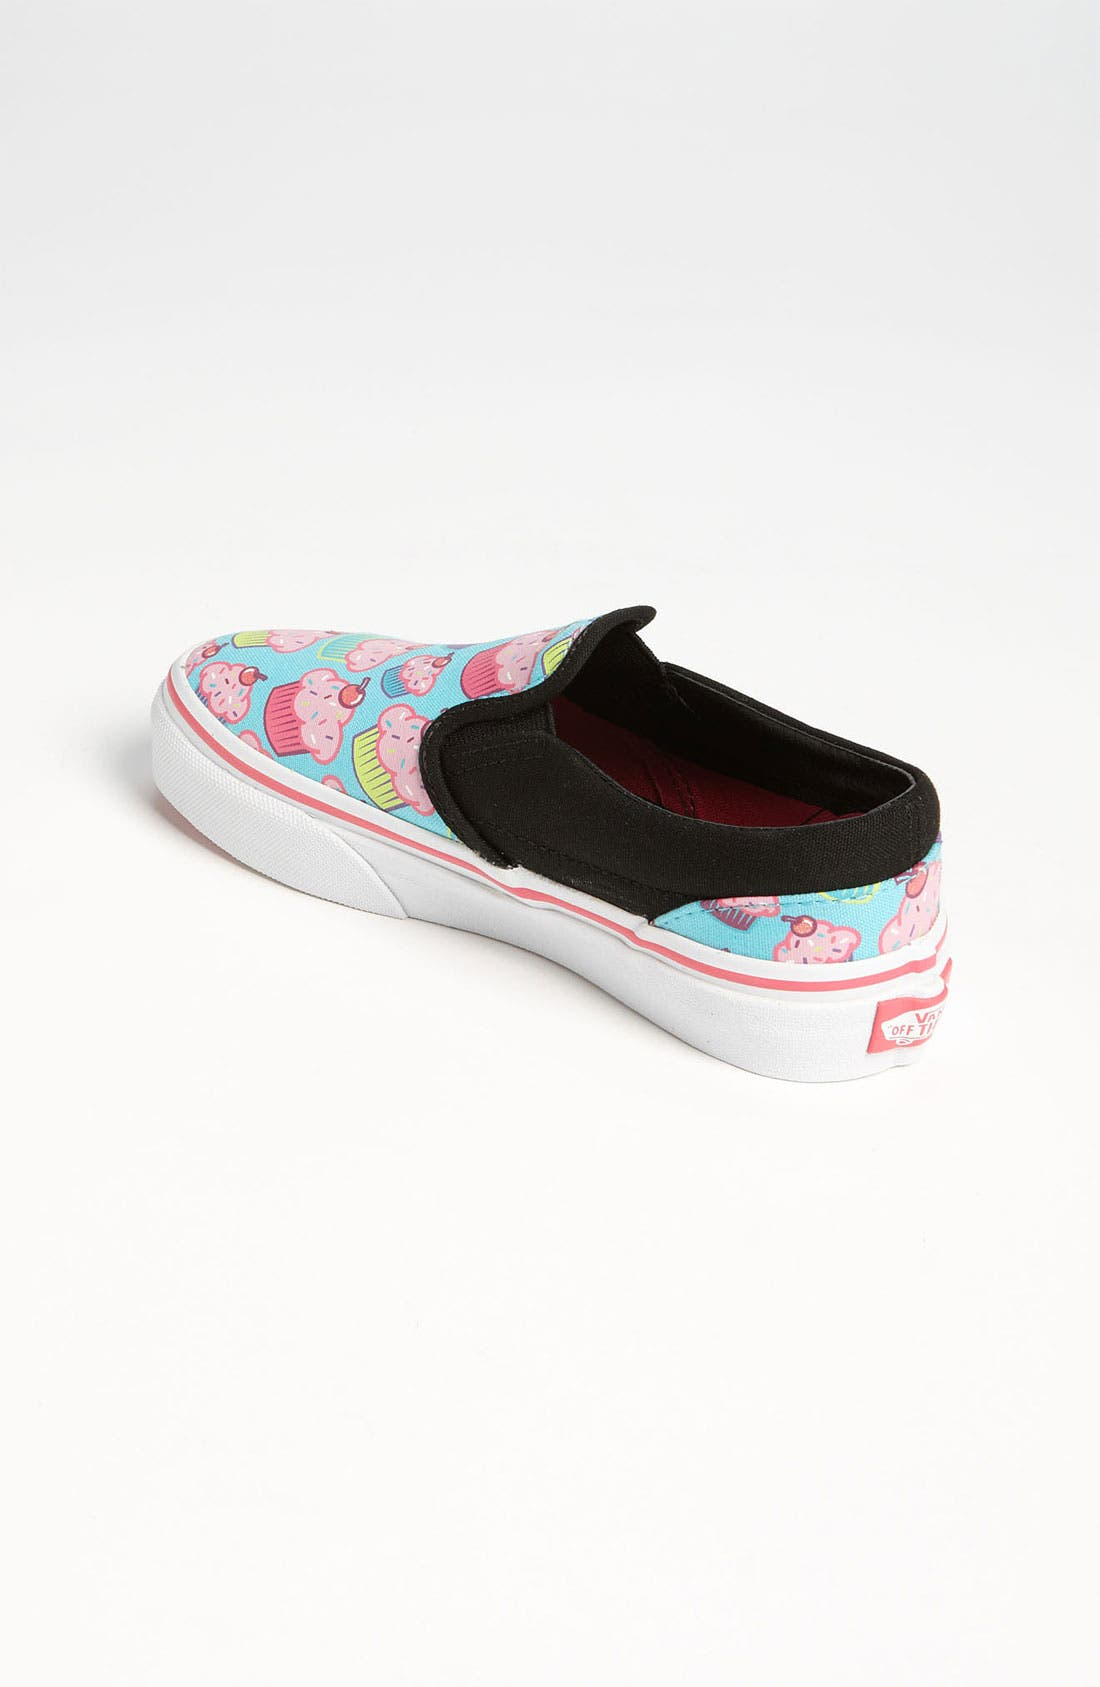 'Cupcakes' Slip-On,                             Alternate thumbnail 4, color,                             400